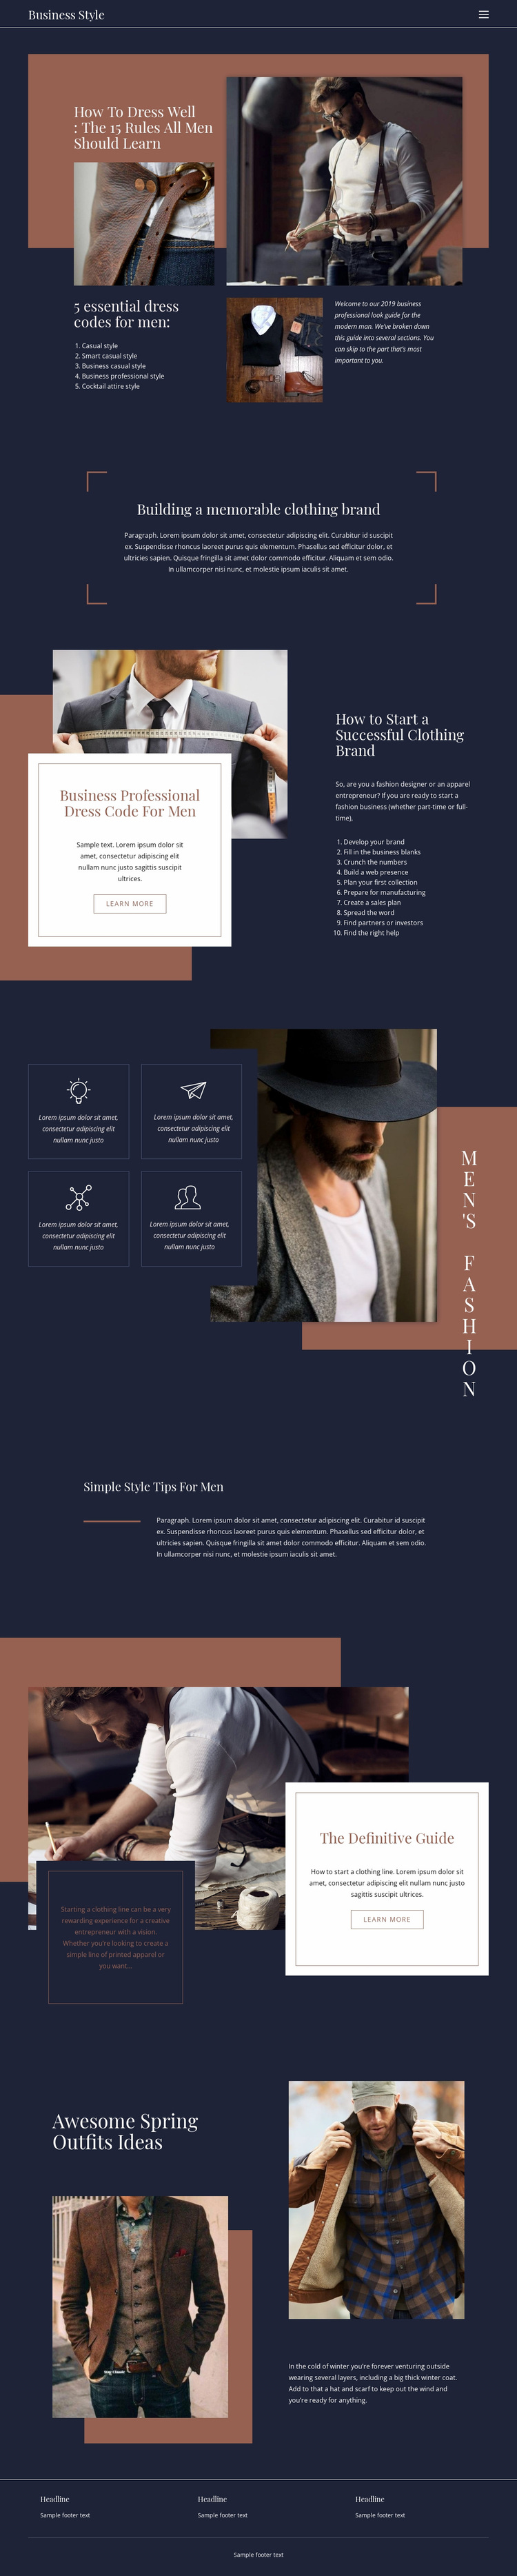 Winning rules of fashion Website Design